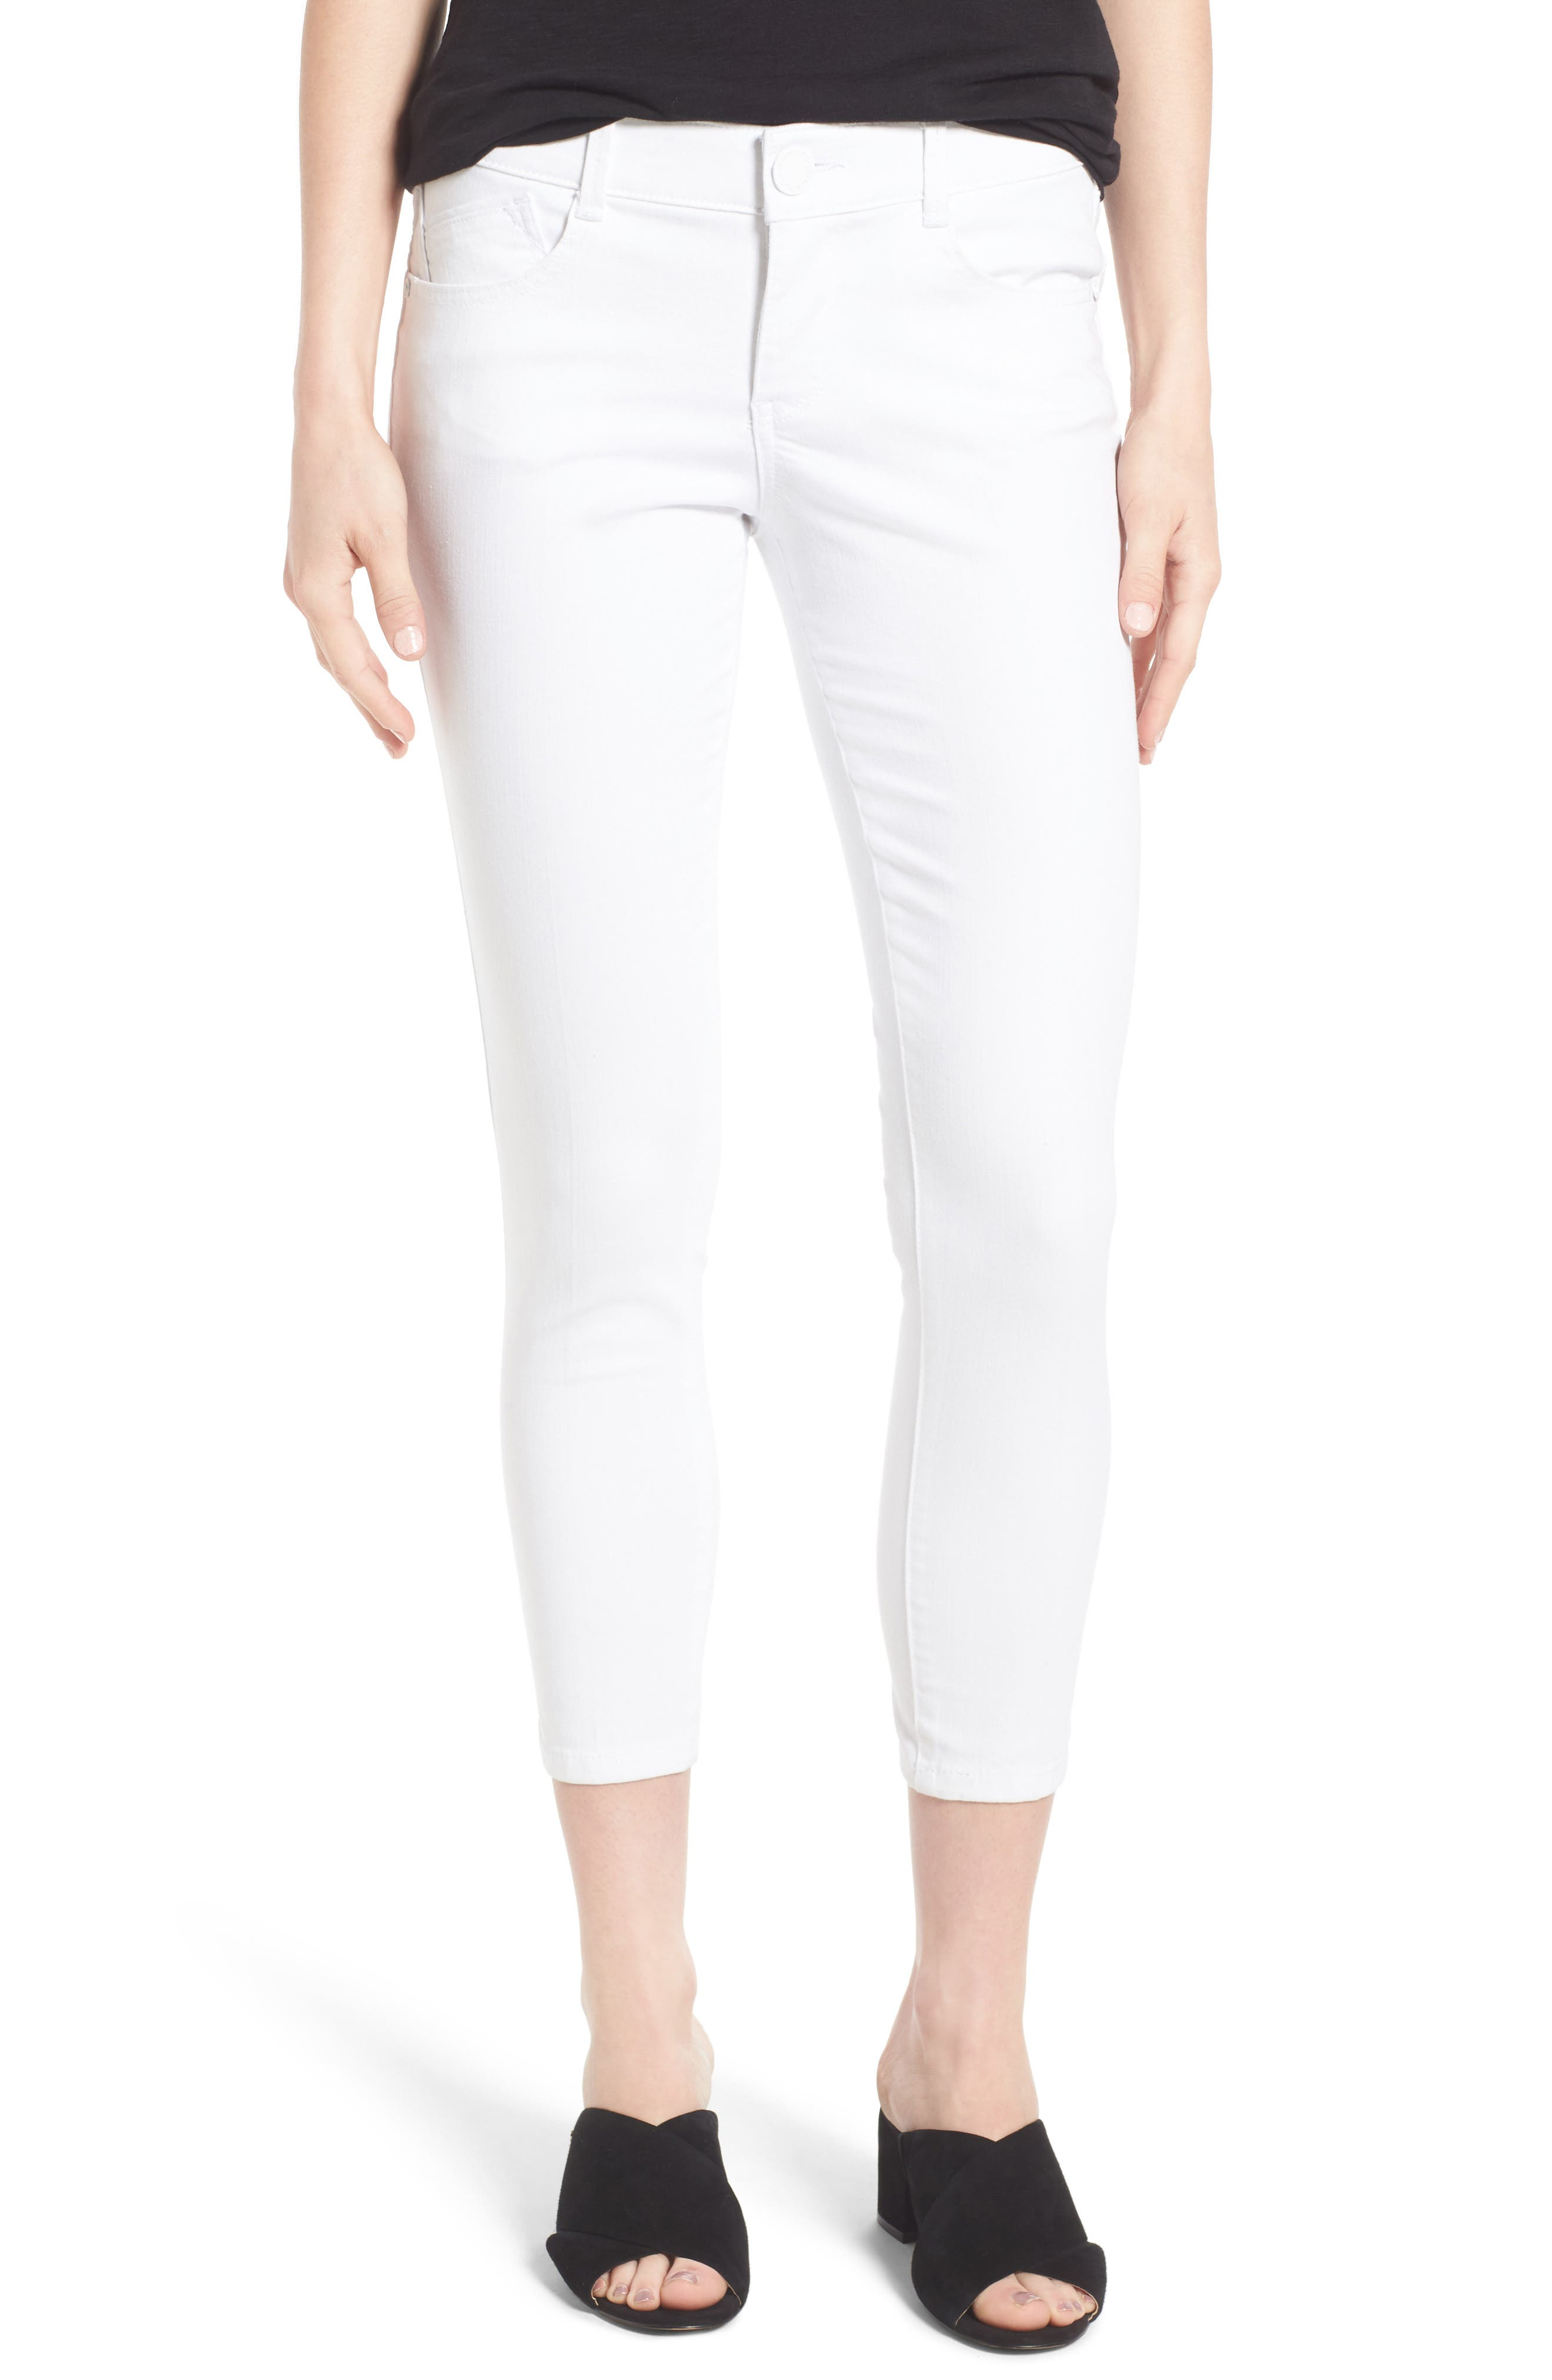 Ab-solution Skinny Crop Jeans,                             Main thumbnail 1, color,                             101